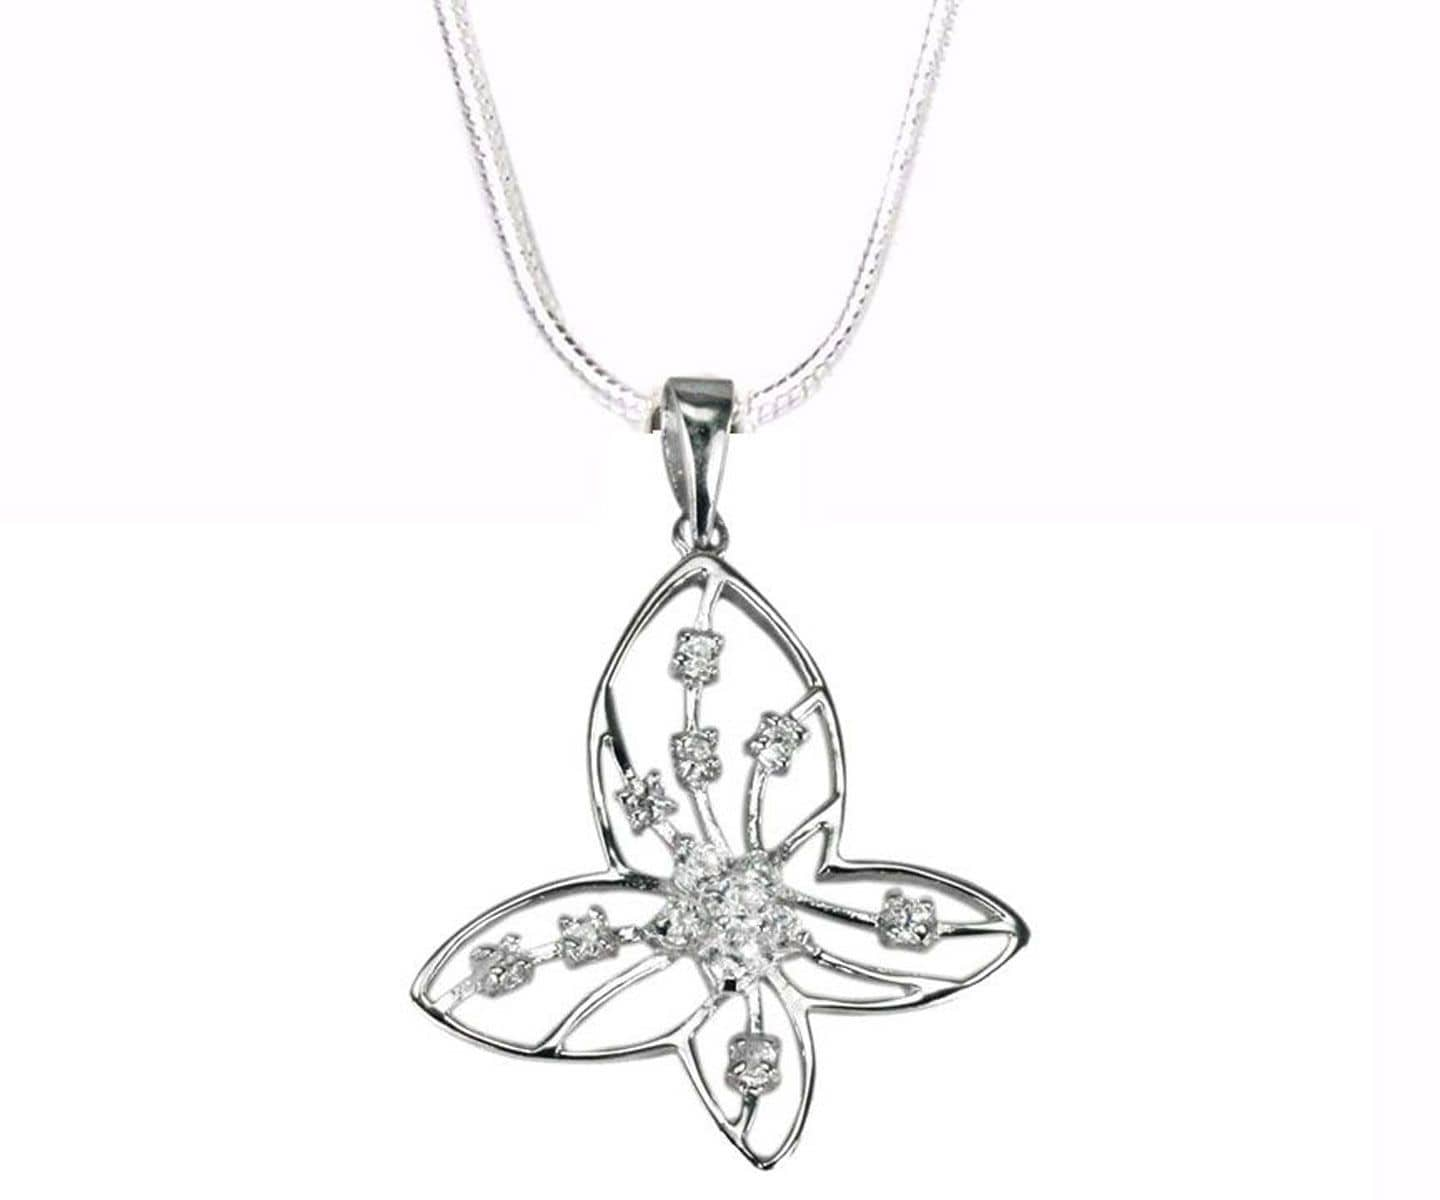 STERLING SILVER BUTTERFLY PENDANT WITH ZIRCONIAS